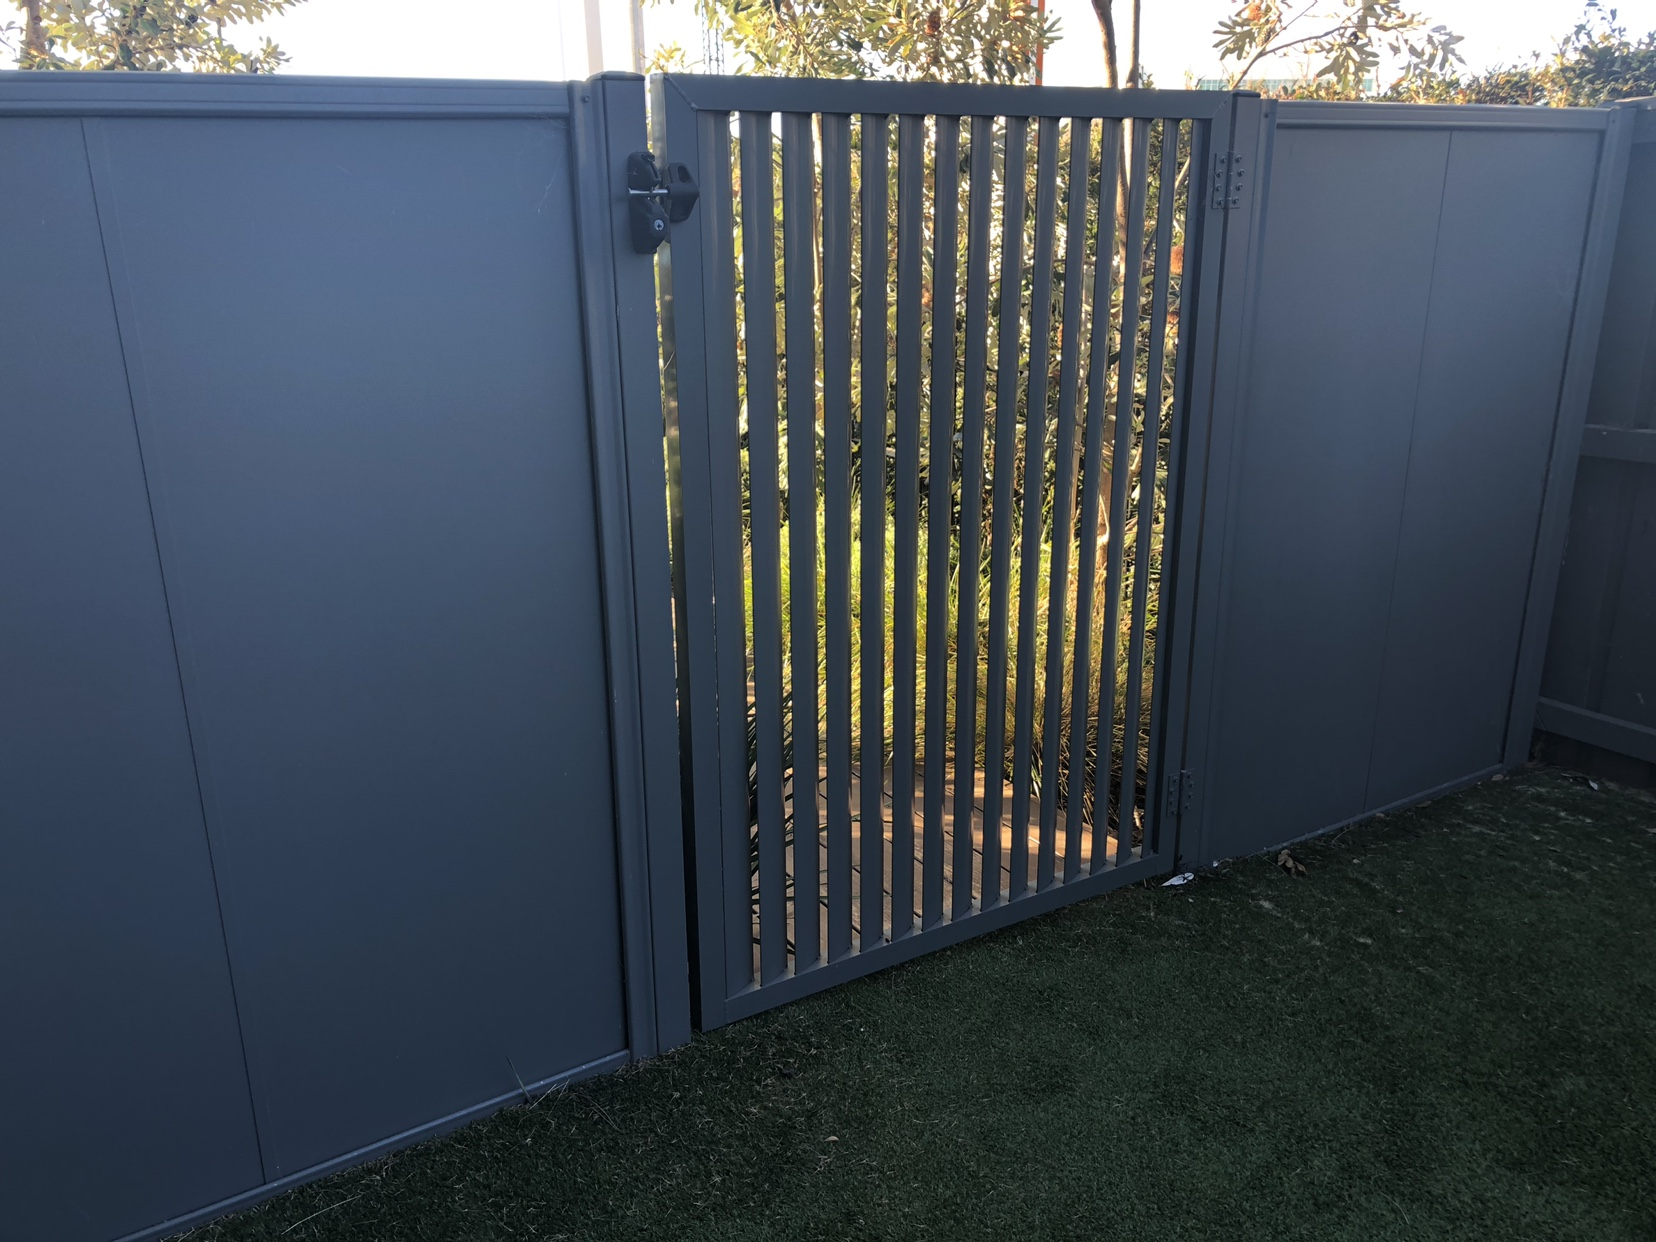 What fence is this?